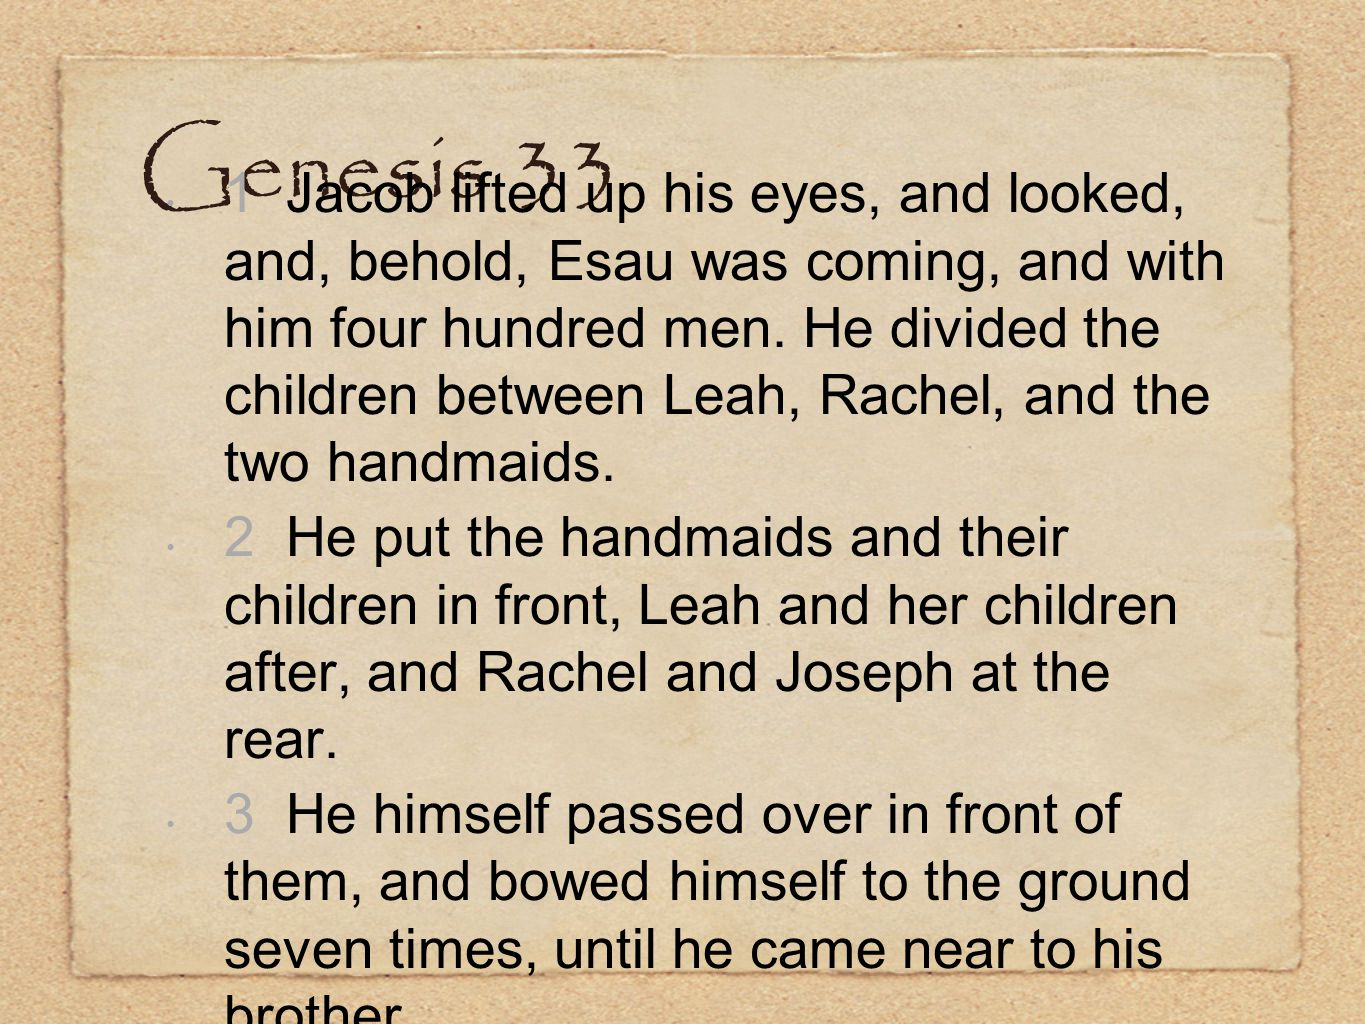 Genesis 33 1 Jacob lifted up his eyes, and looked, and, behold, Esau was coming, and with him four hundred men. He divided the children between Leah,